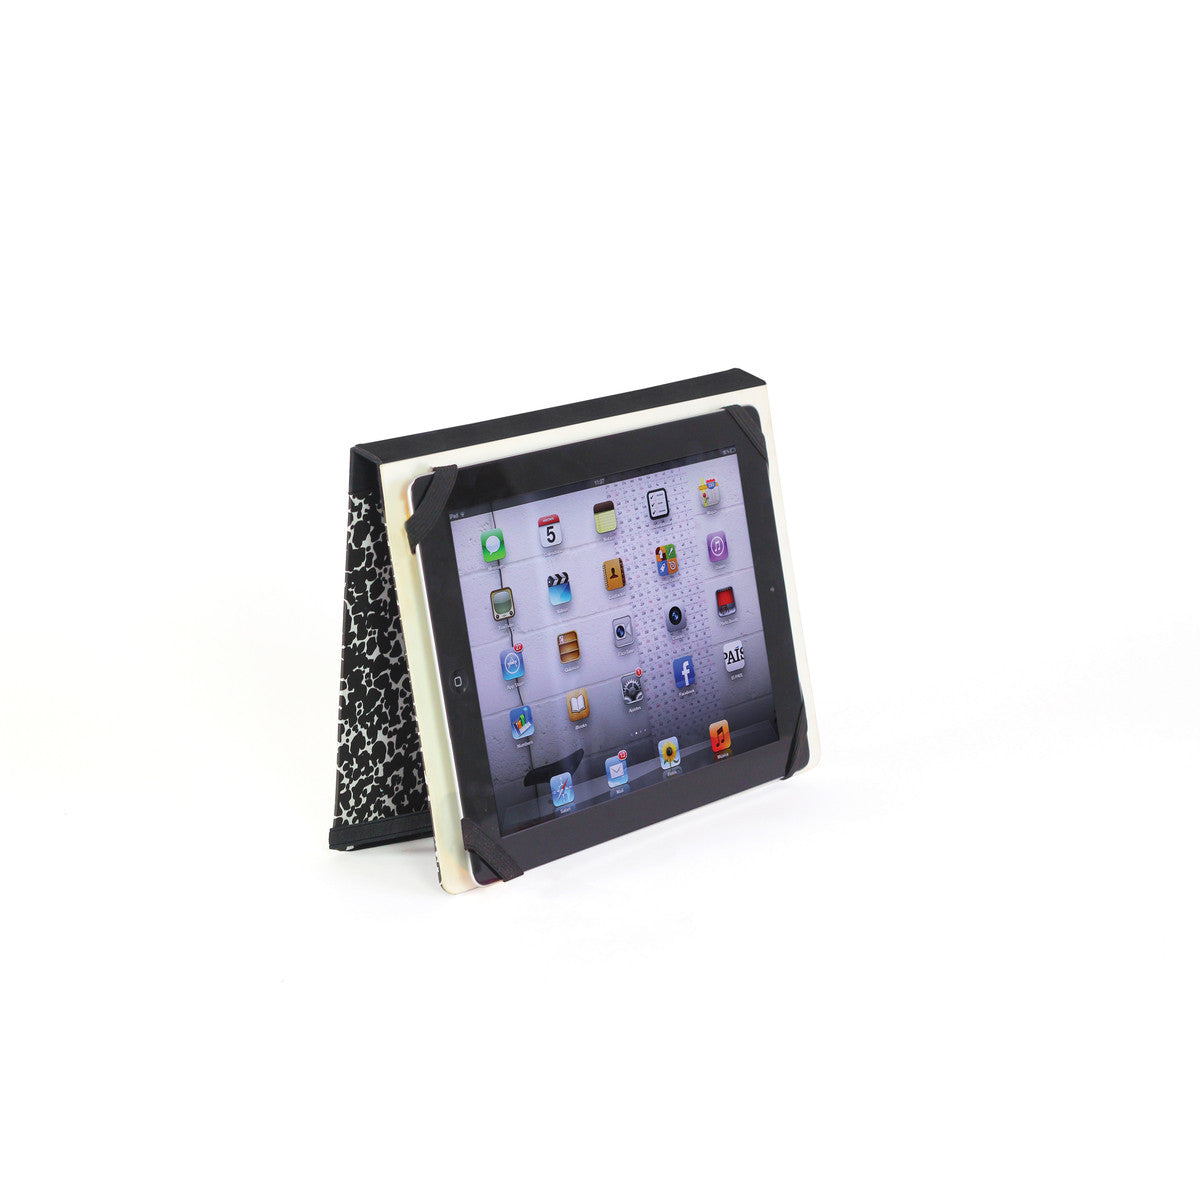 Incognito Ipad Case - Composition